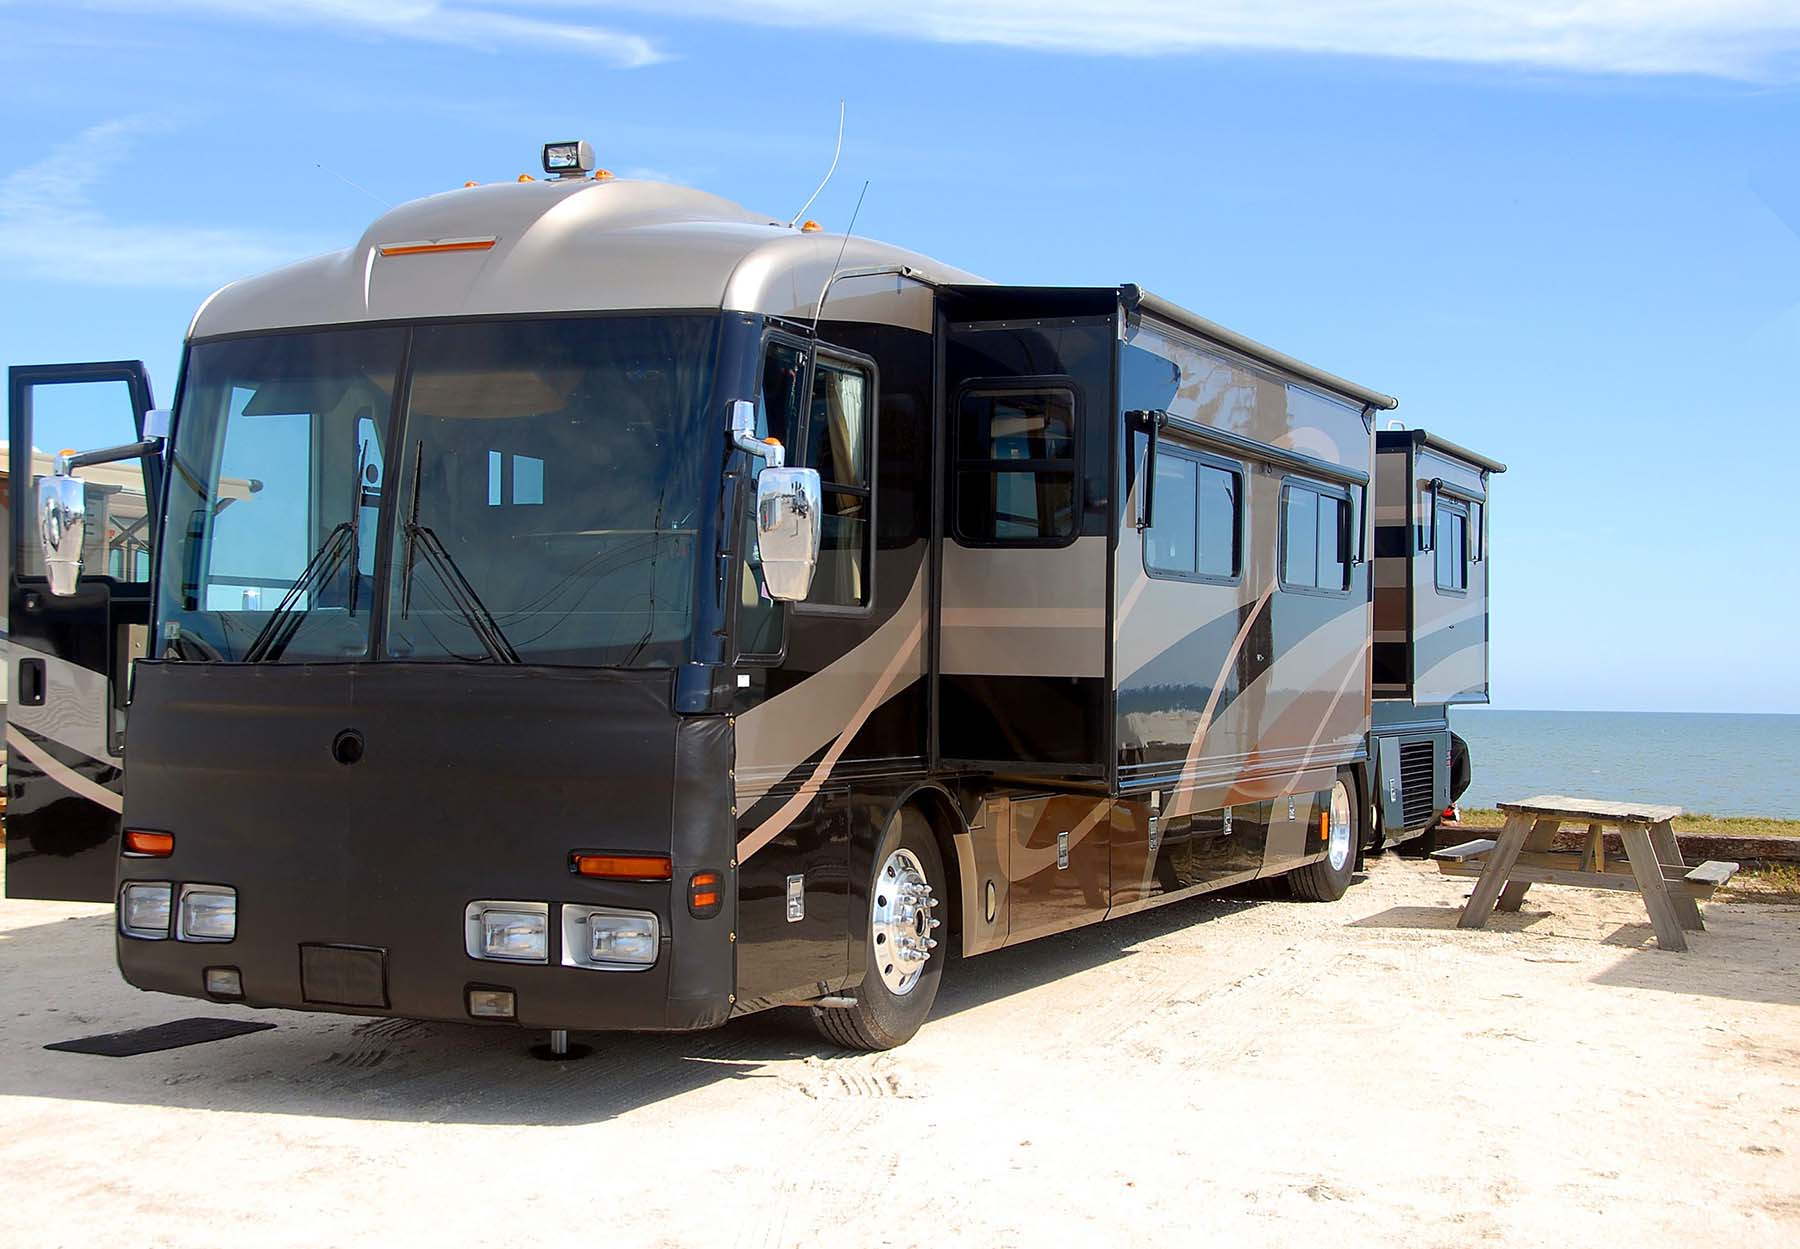 RV loans and financing